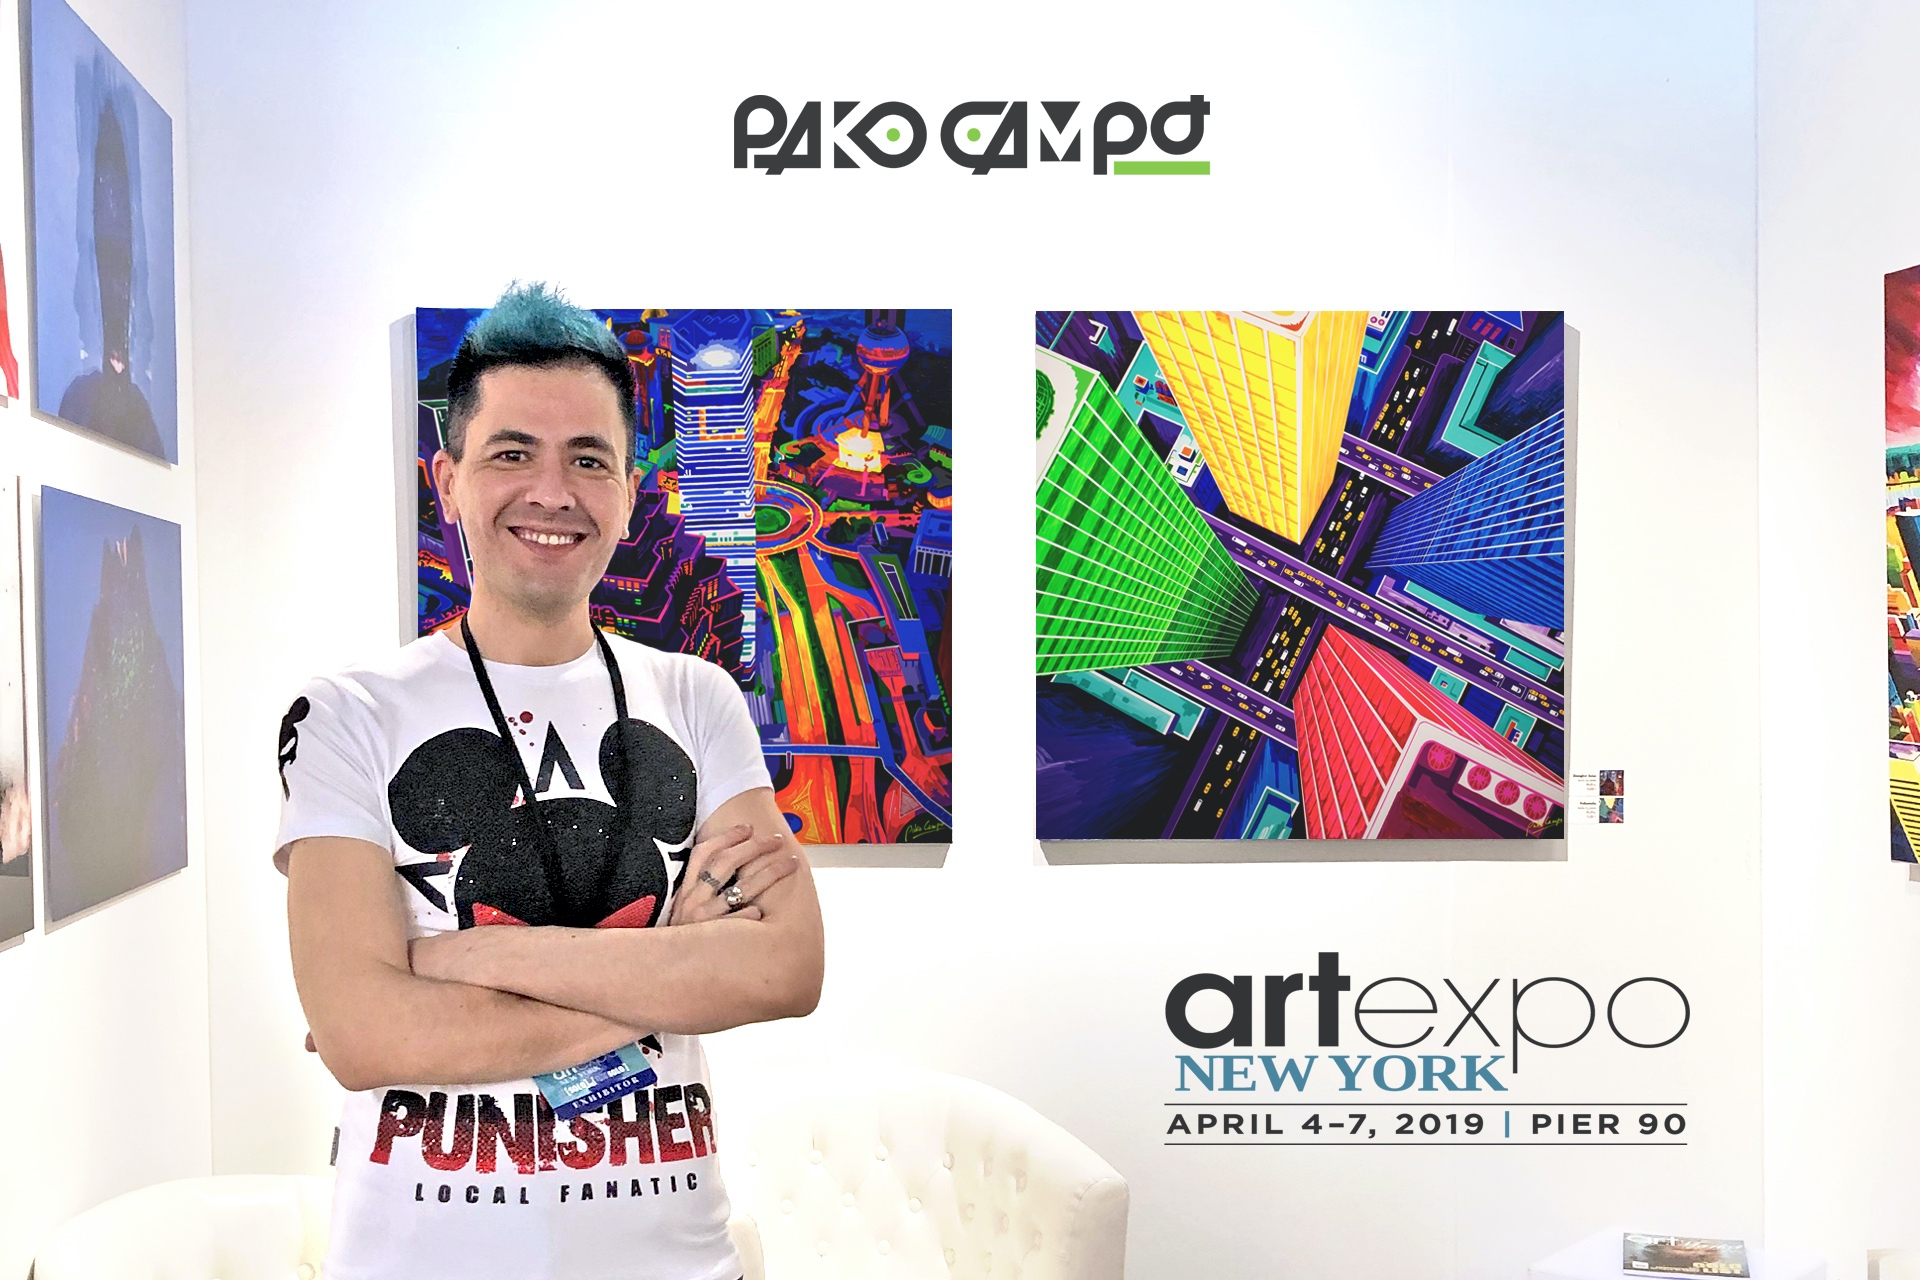 Artexpo New York 2019 Recap by Pako Campo